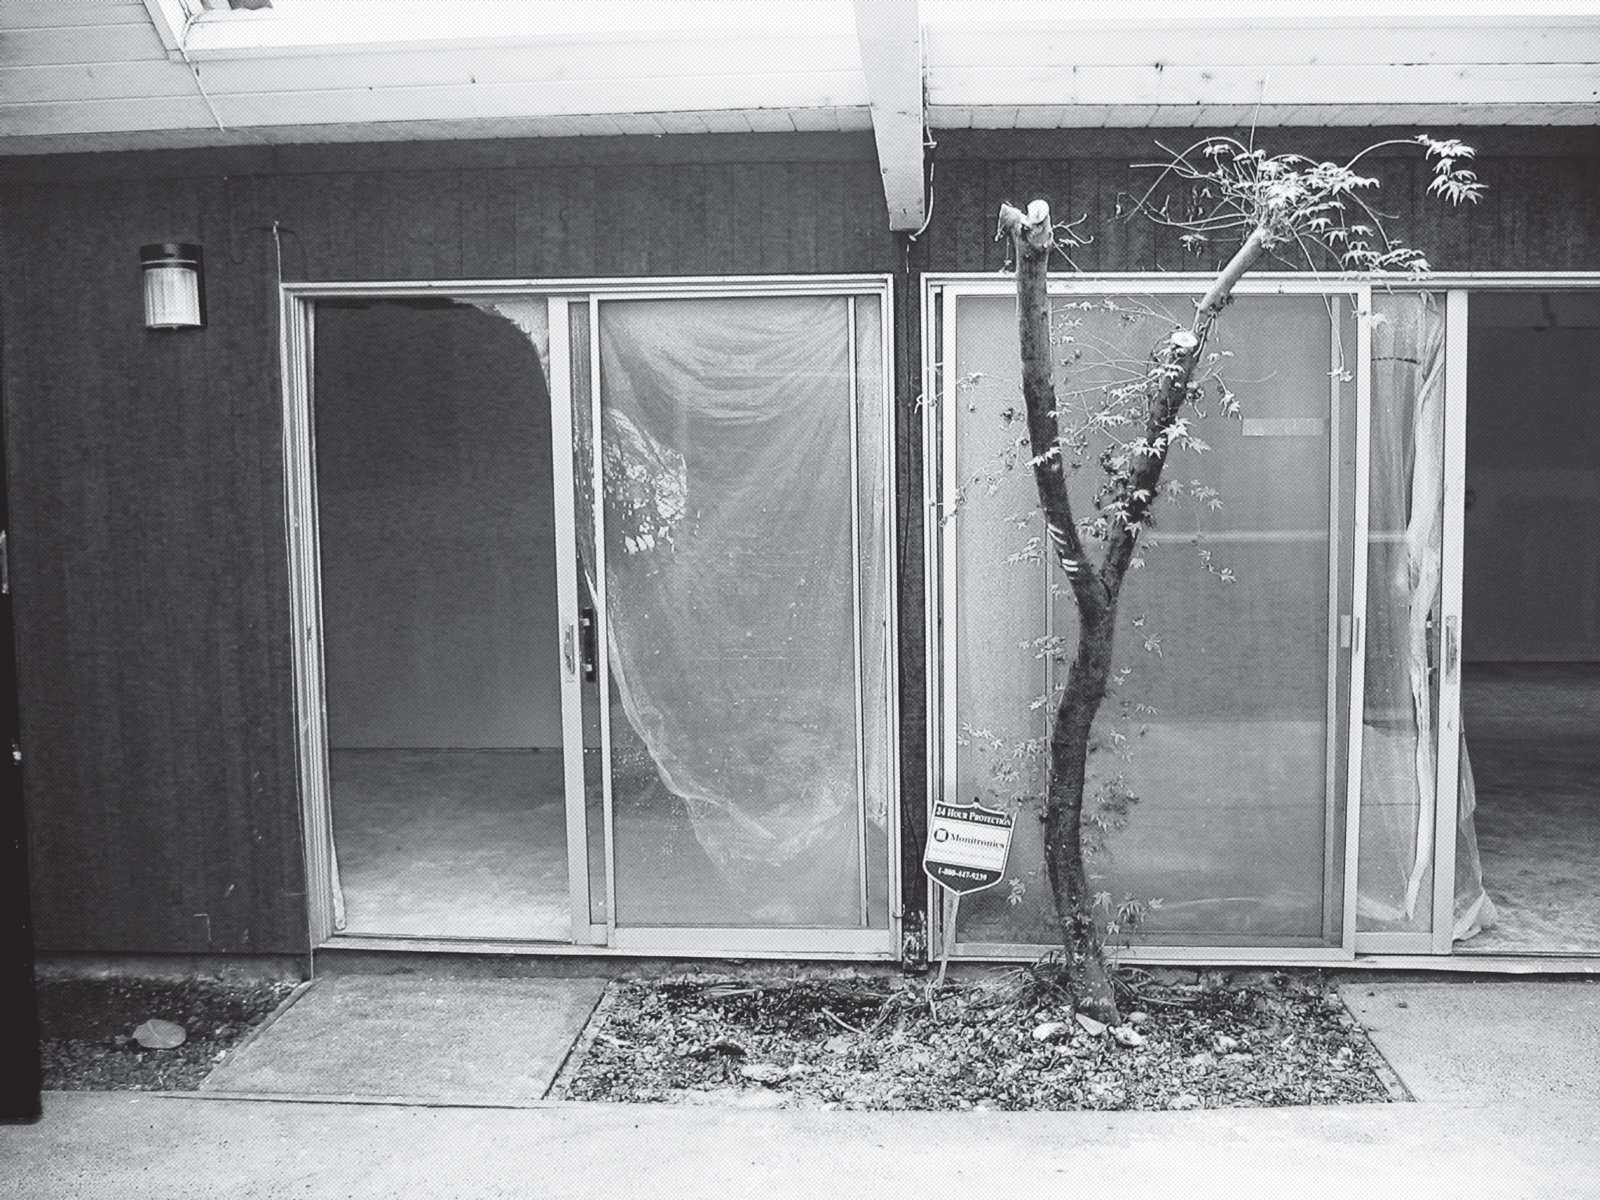 A 2006 photograph shows the dated sliding glass doors. A Mid-Century Modern Home in Southwest Portland - Photo 13 of 15